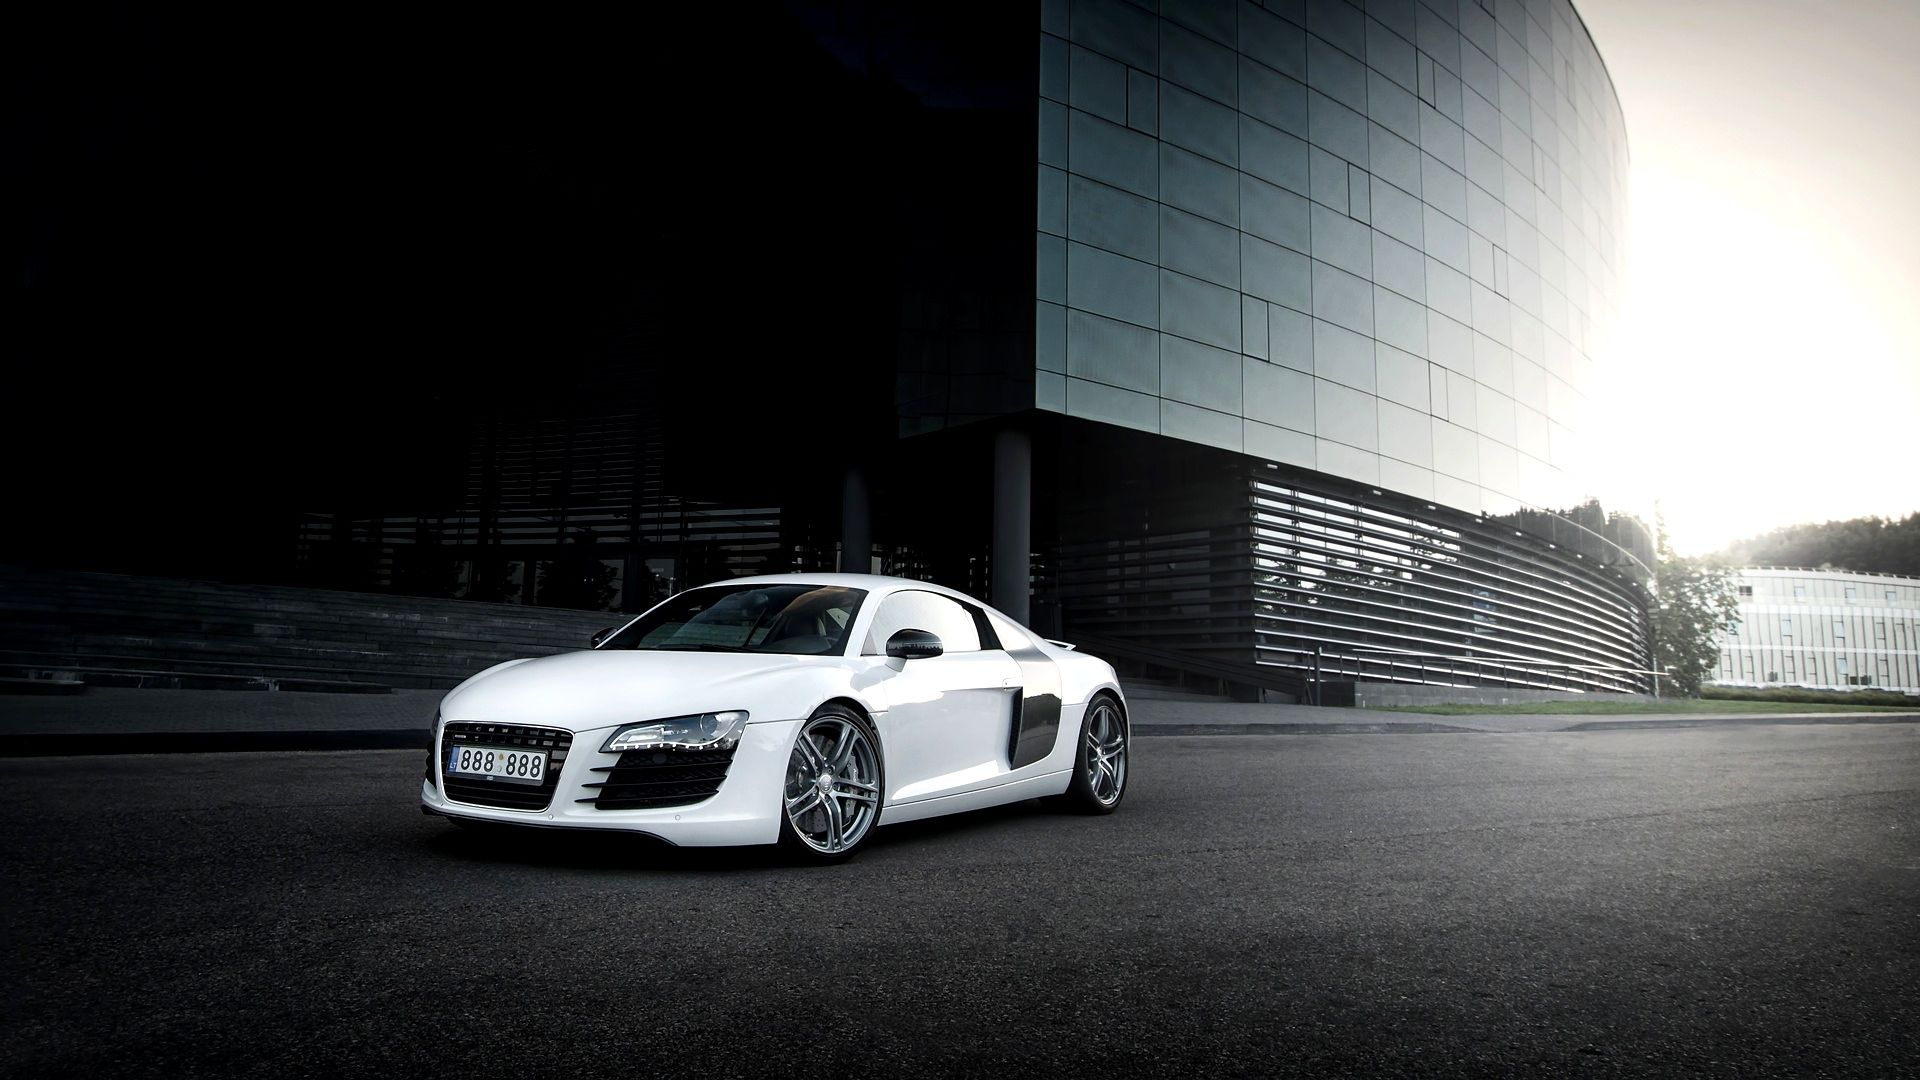 car wallpaper [1920 x 1080] See more on Classy Bro (With